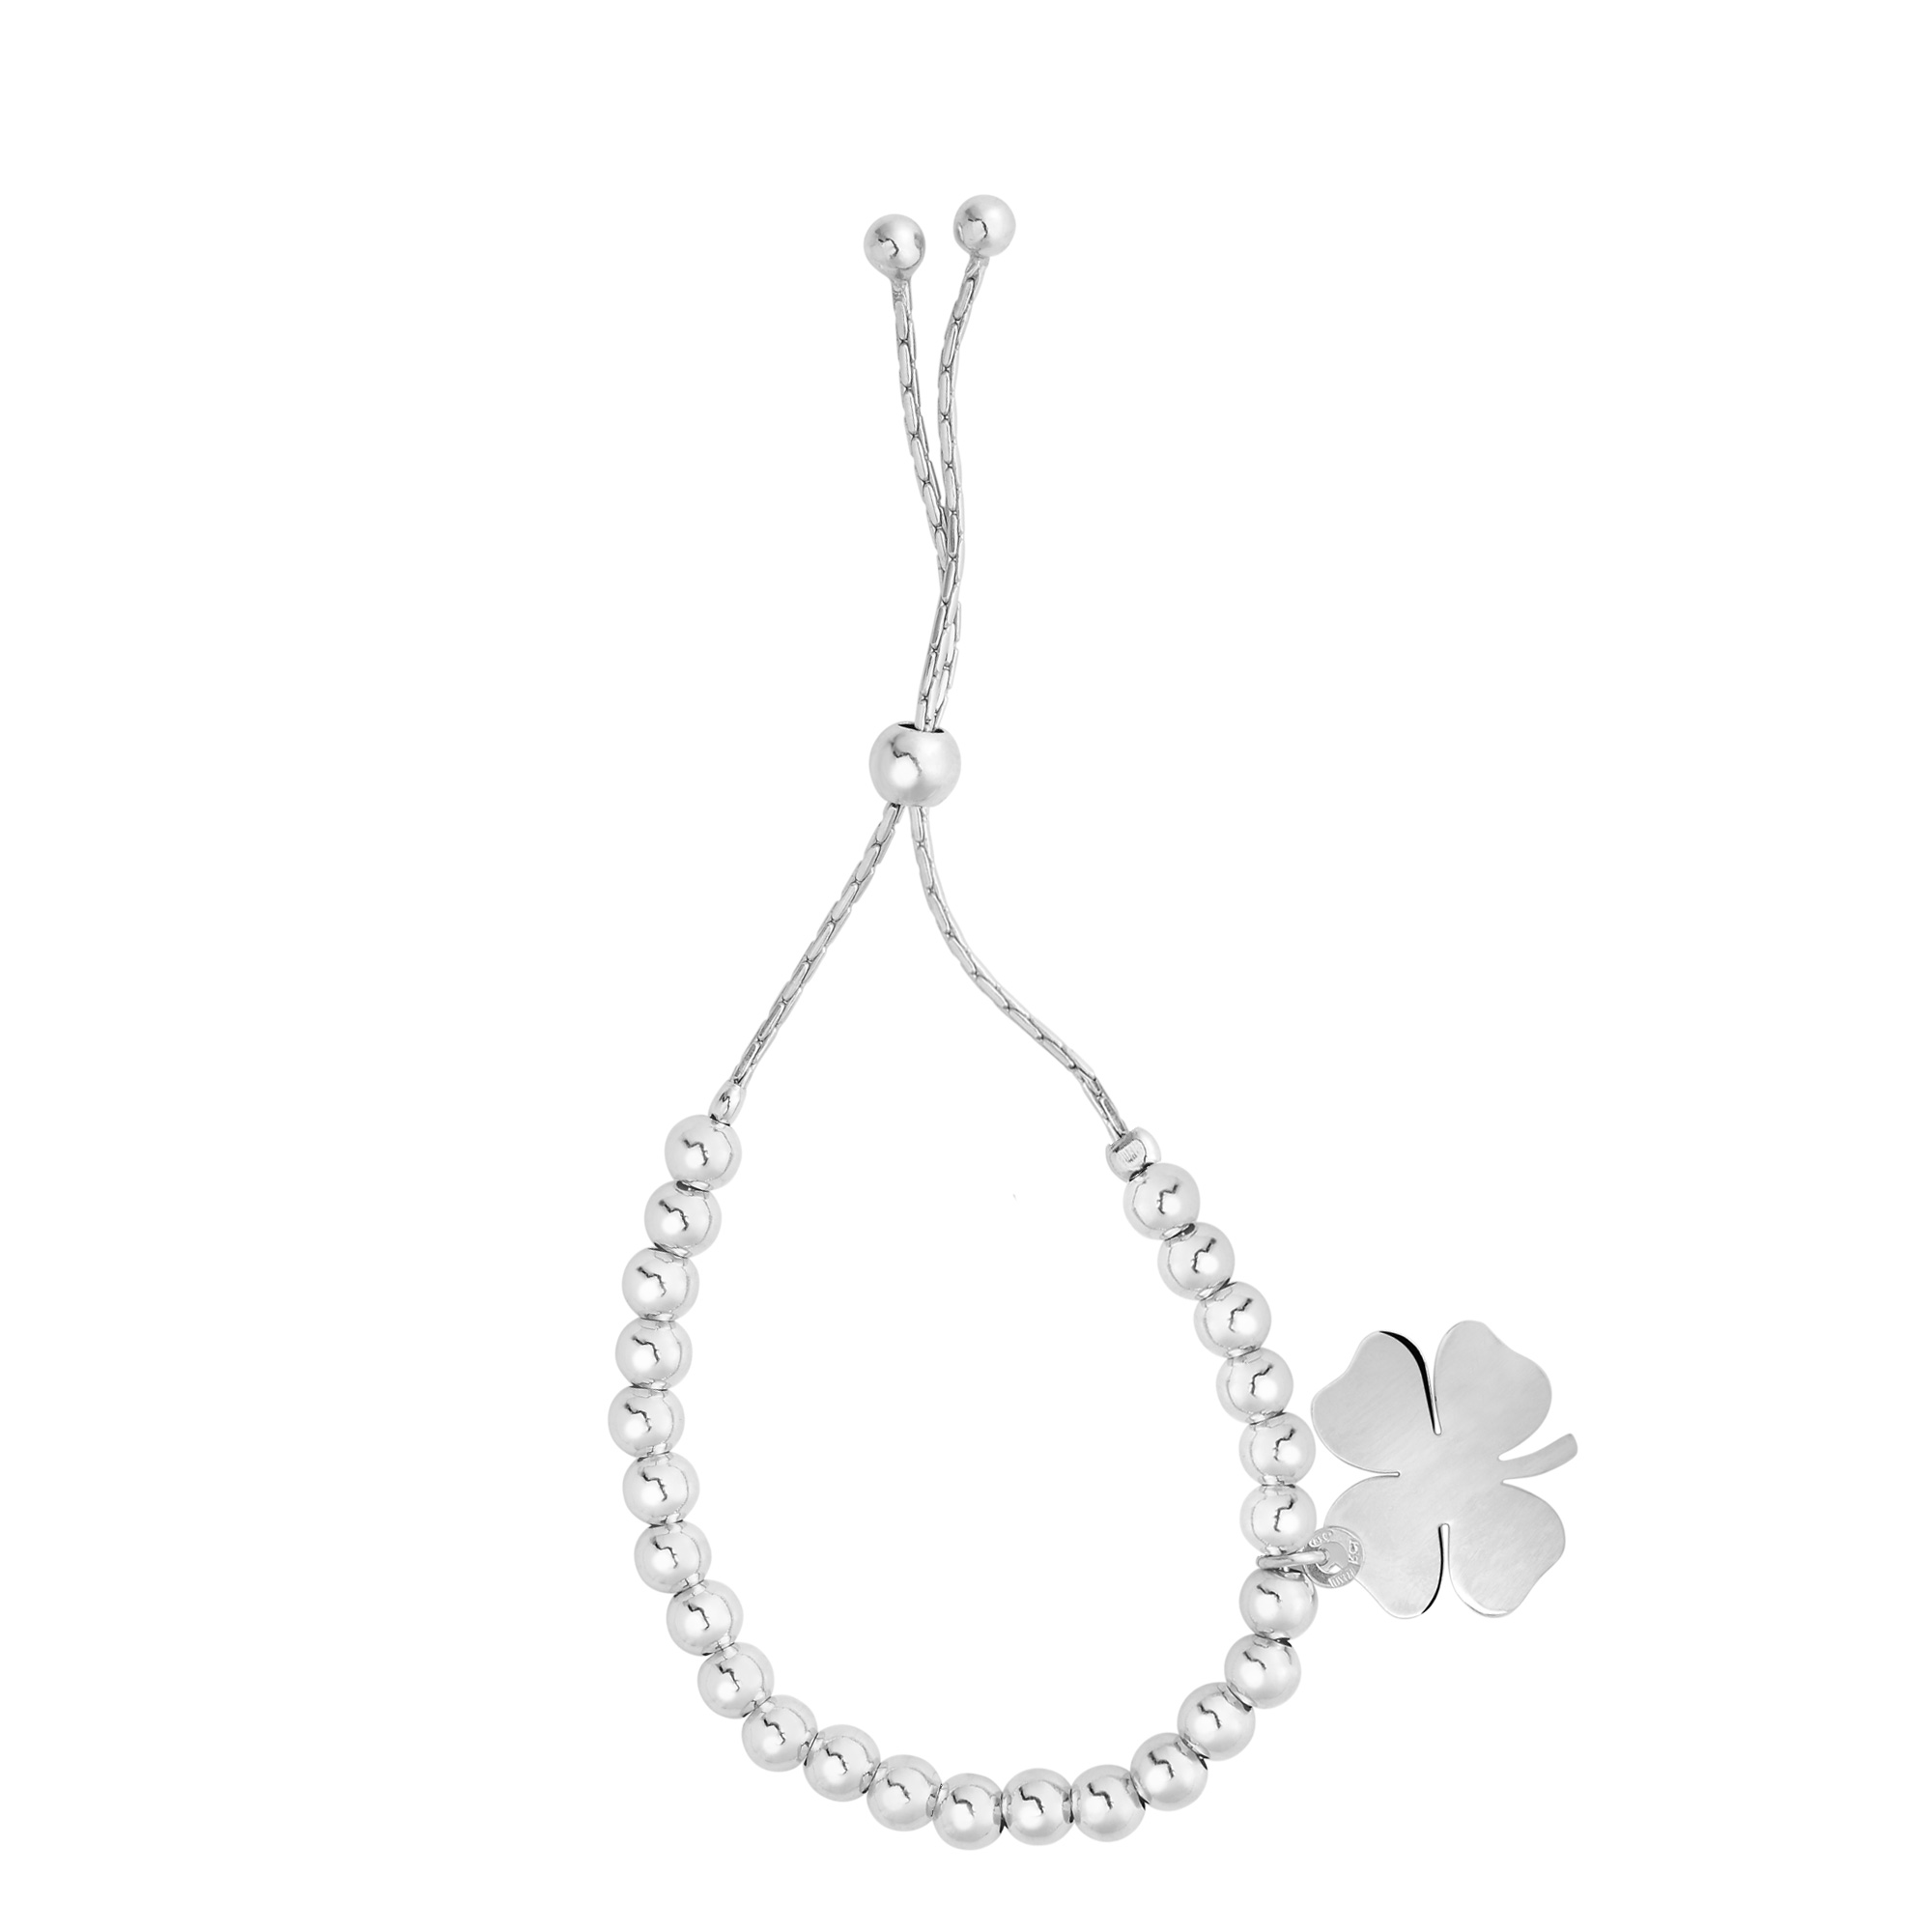 Sterling Silver Beads And 4 Leaf Clover Dangle Charm Adjustable Bolo Friendship Bracelet , 9.25  Designed for today's fast-moving, contemporary woman, the Friendship bracelets are smart, stylish and easy to wear. Meticulously executed in high quality Rhodium plated sterling silver, these iconic bracelets are easily adjusted to fit any wrist. The Adjustable sliding closure allows you to go from 9.25 inches length to as small as allowed by the design.  Each unique style of our Friendship collection looks beautiful worn as one piece alone or stacked with multiple styles for a layered and modern look. The bracelet comes in an elegant jewelry gift box, perfect for any gift giving occasion.